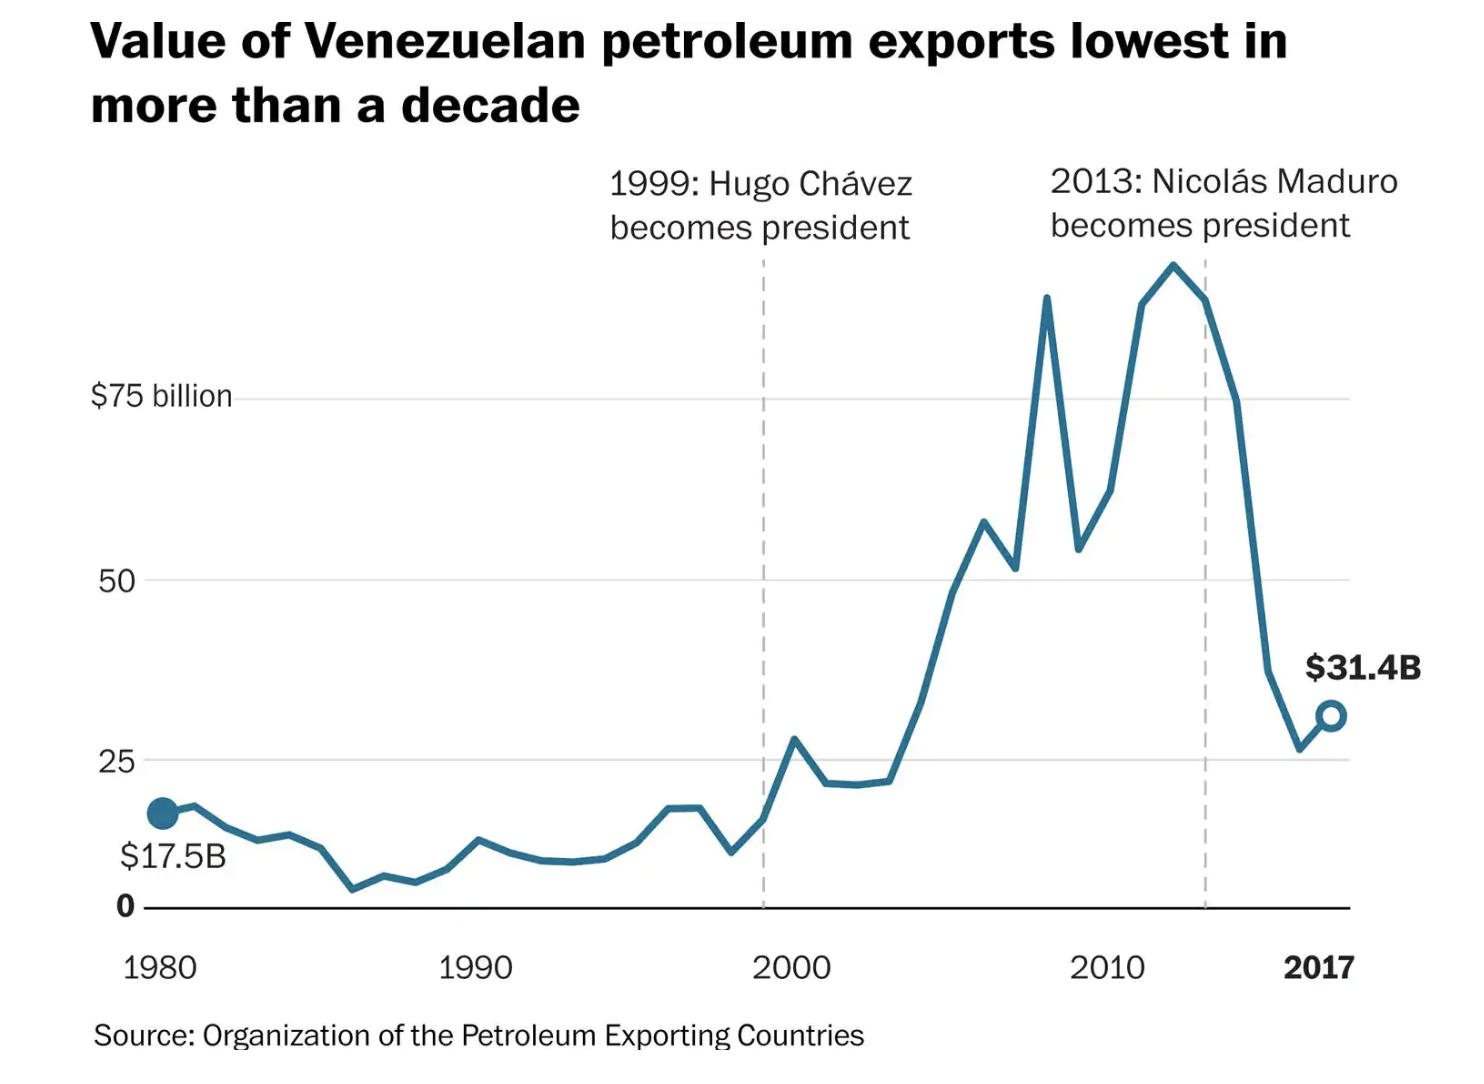 https://www.washingtonpost.com/world/venezuelas-crisis-in-5-charts/2019/01/26/97af60a6-20c4-11e9-a759-2b8541bbbe20_story.html?noredirect=on&utm_term=.f60a9eec698d